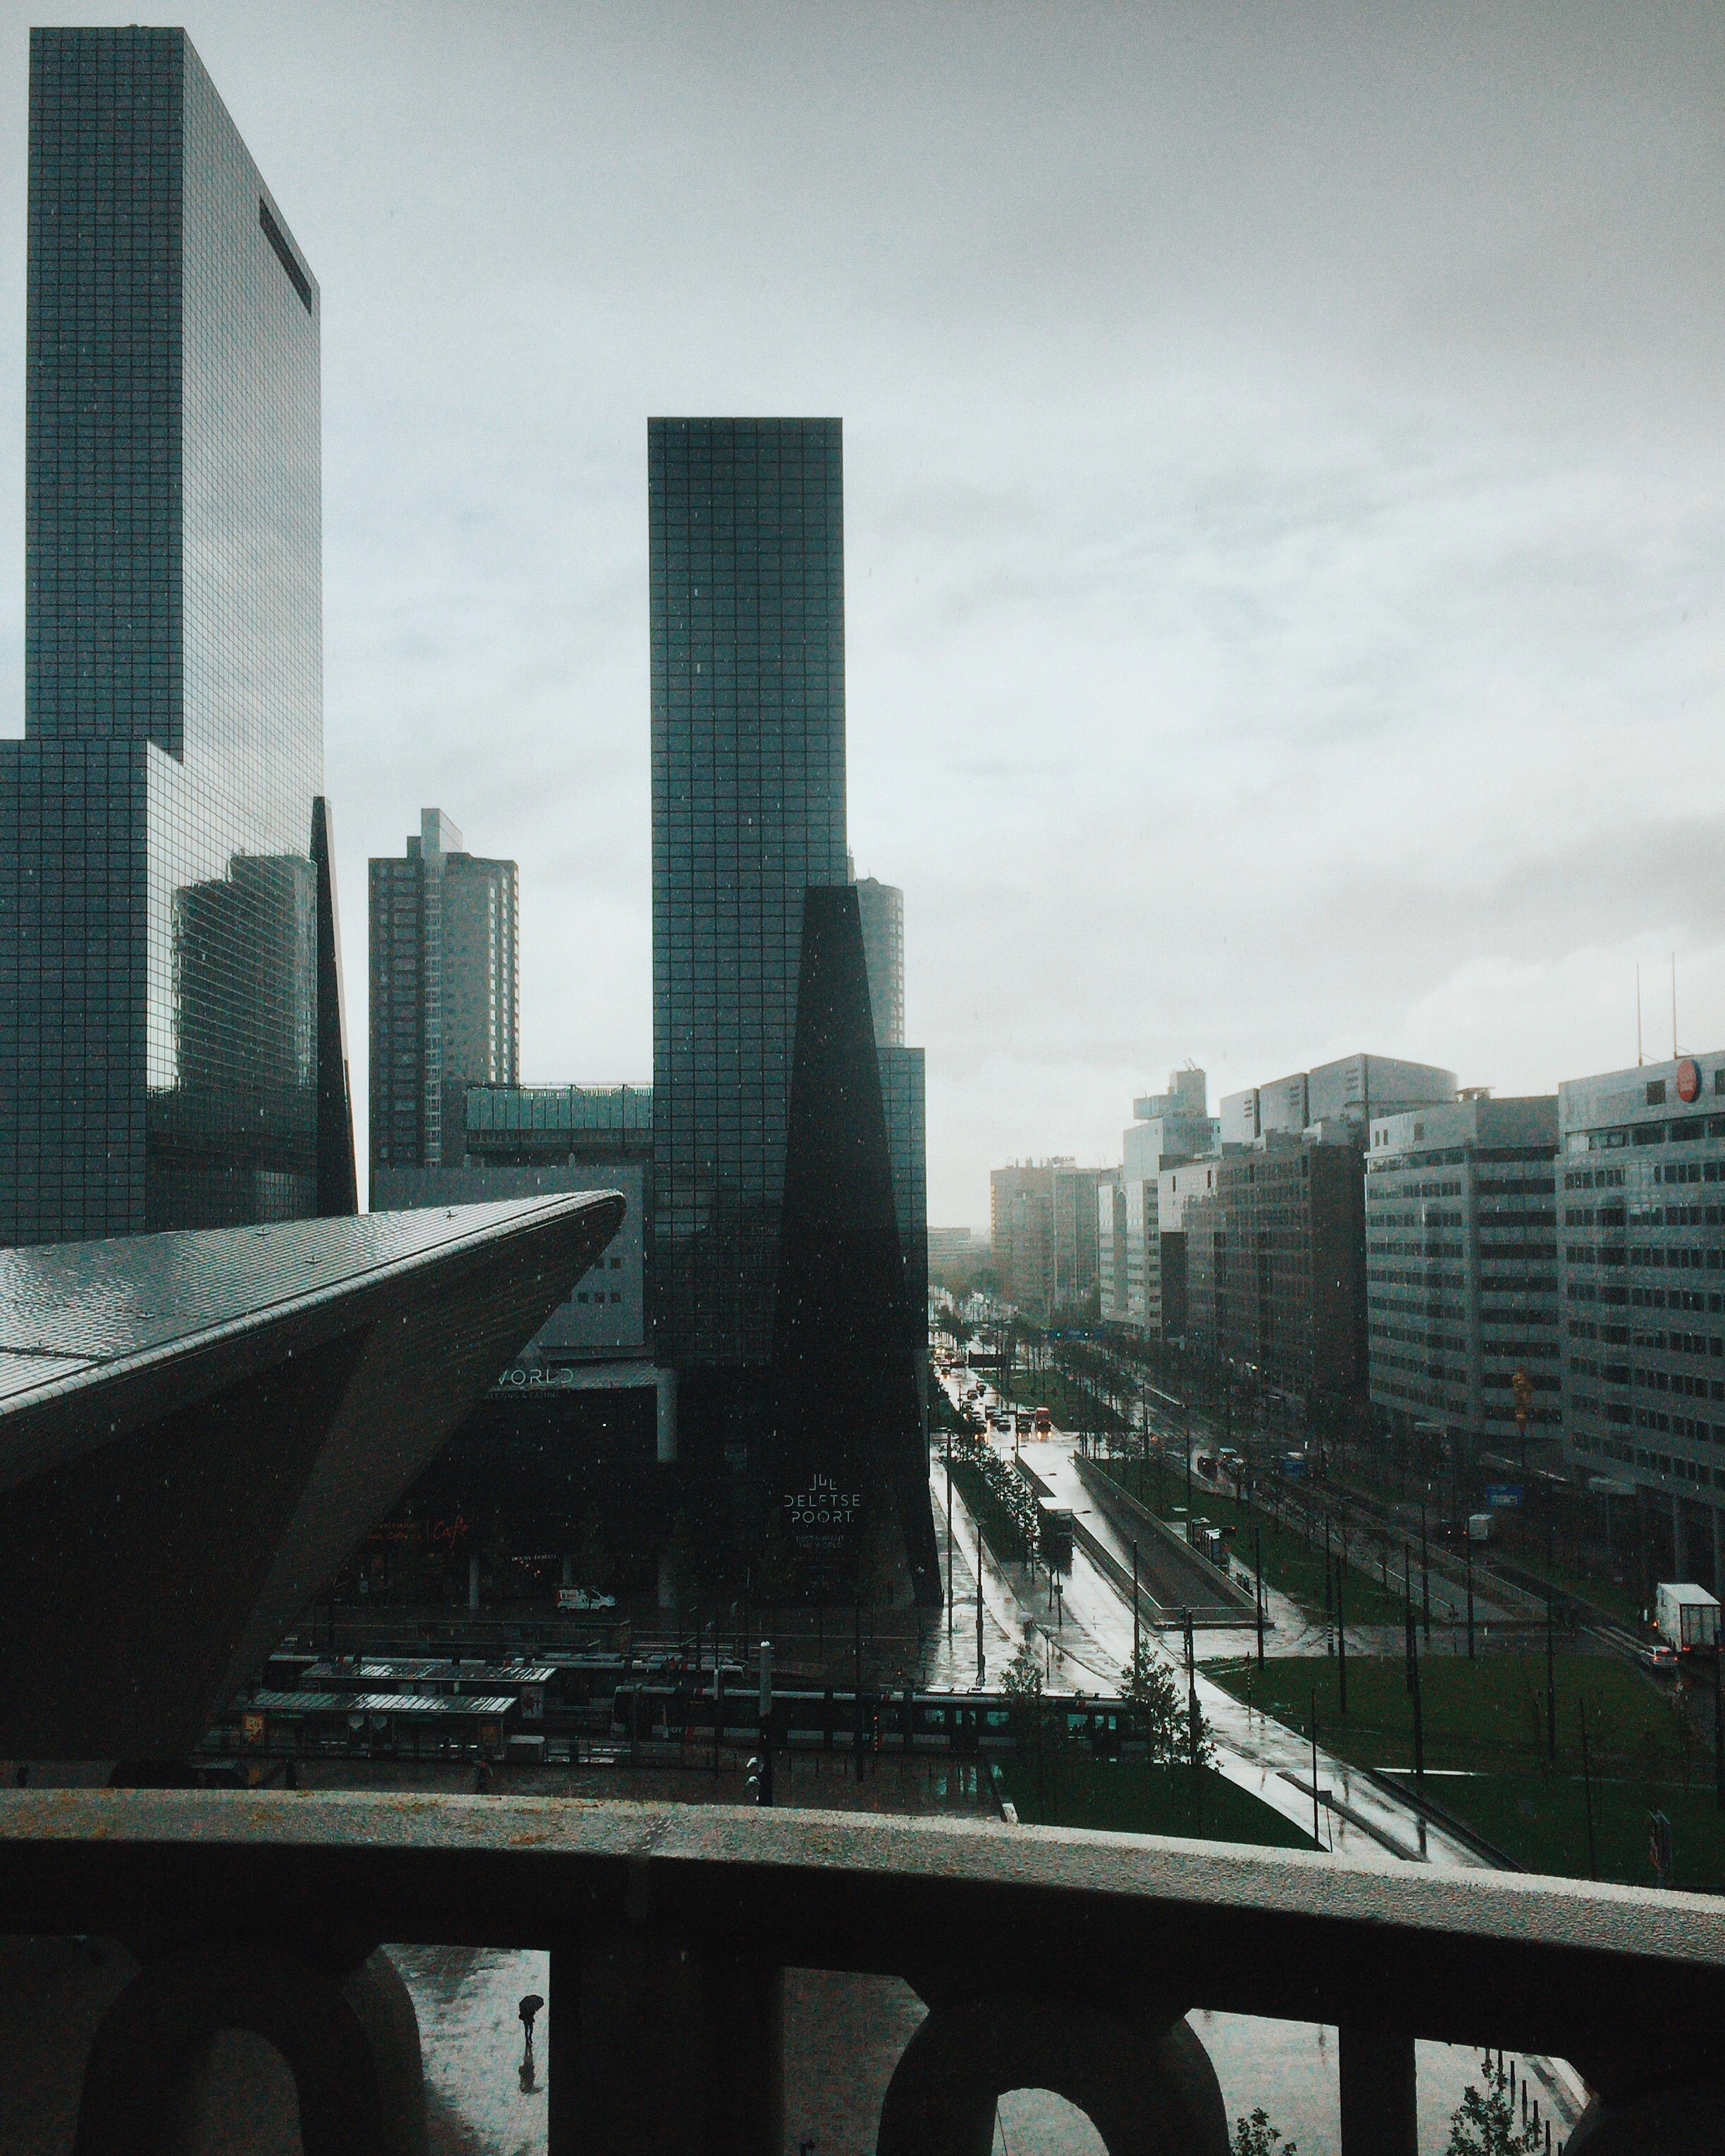 The business district in Rotterdam on a rainy day